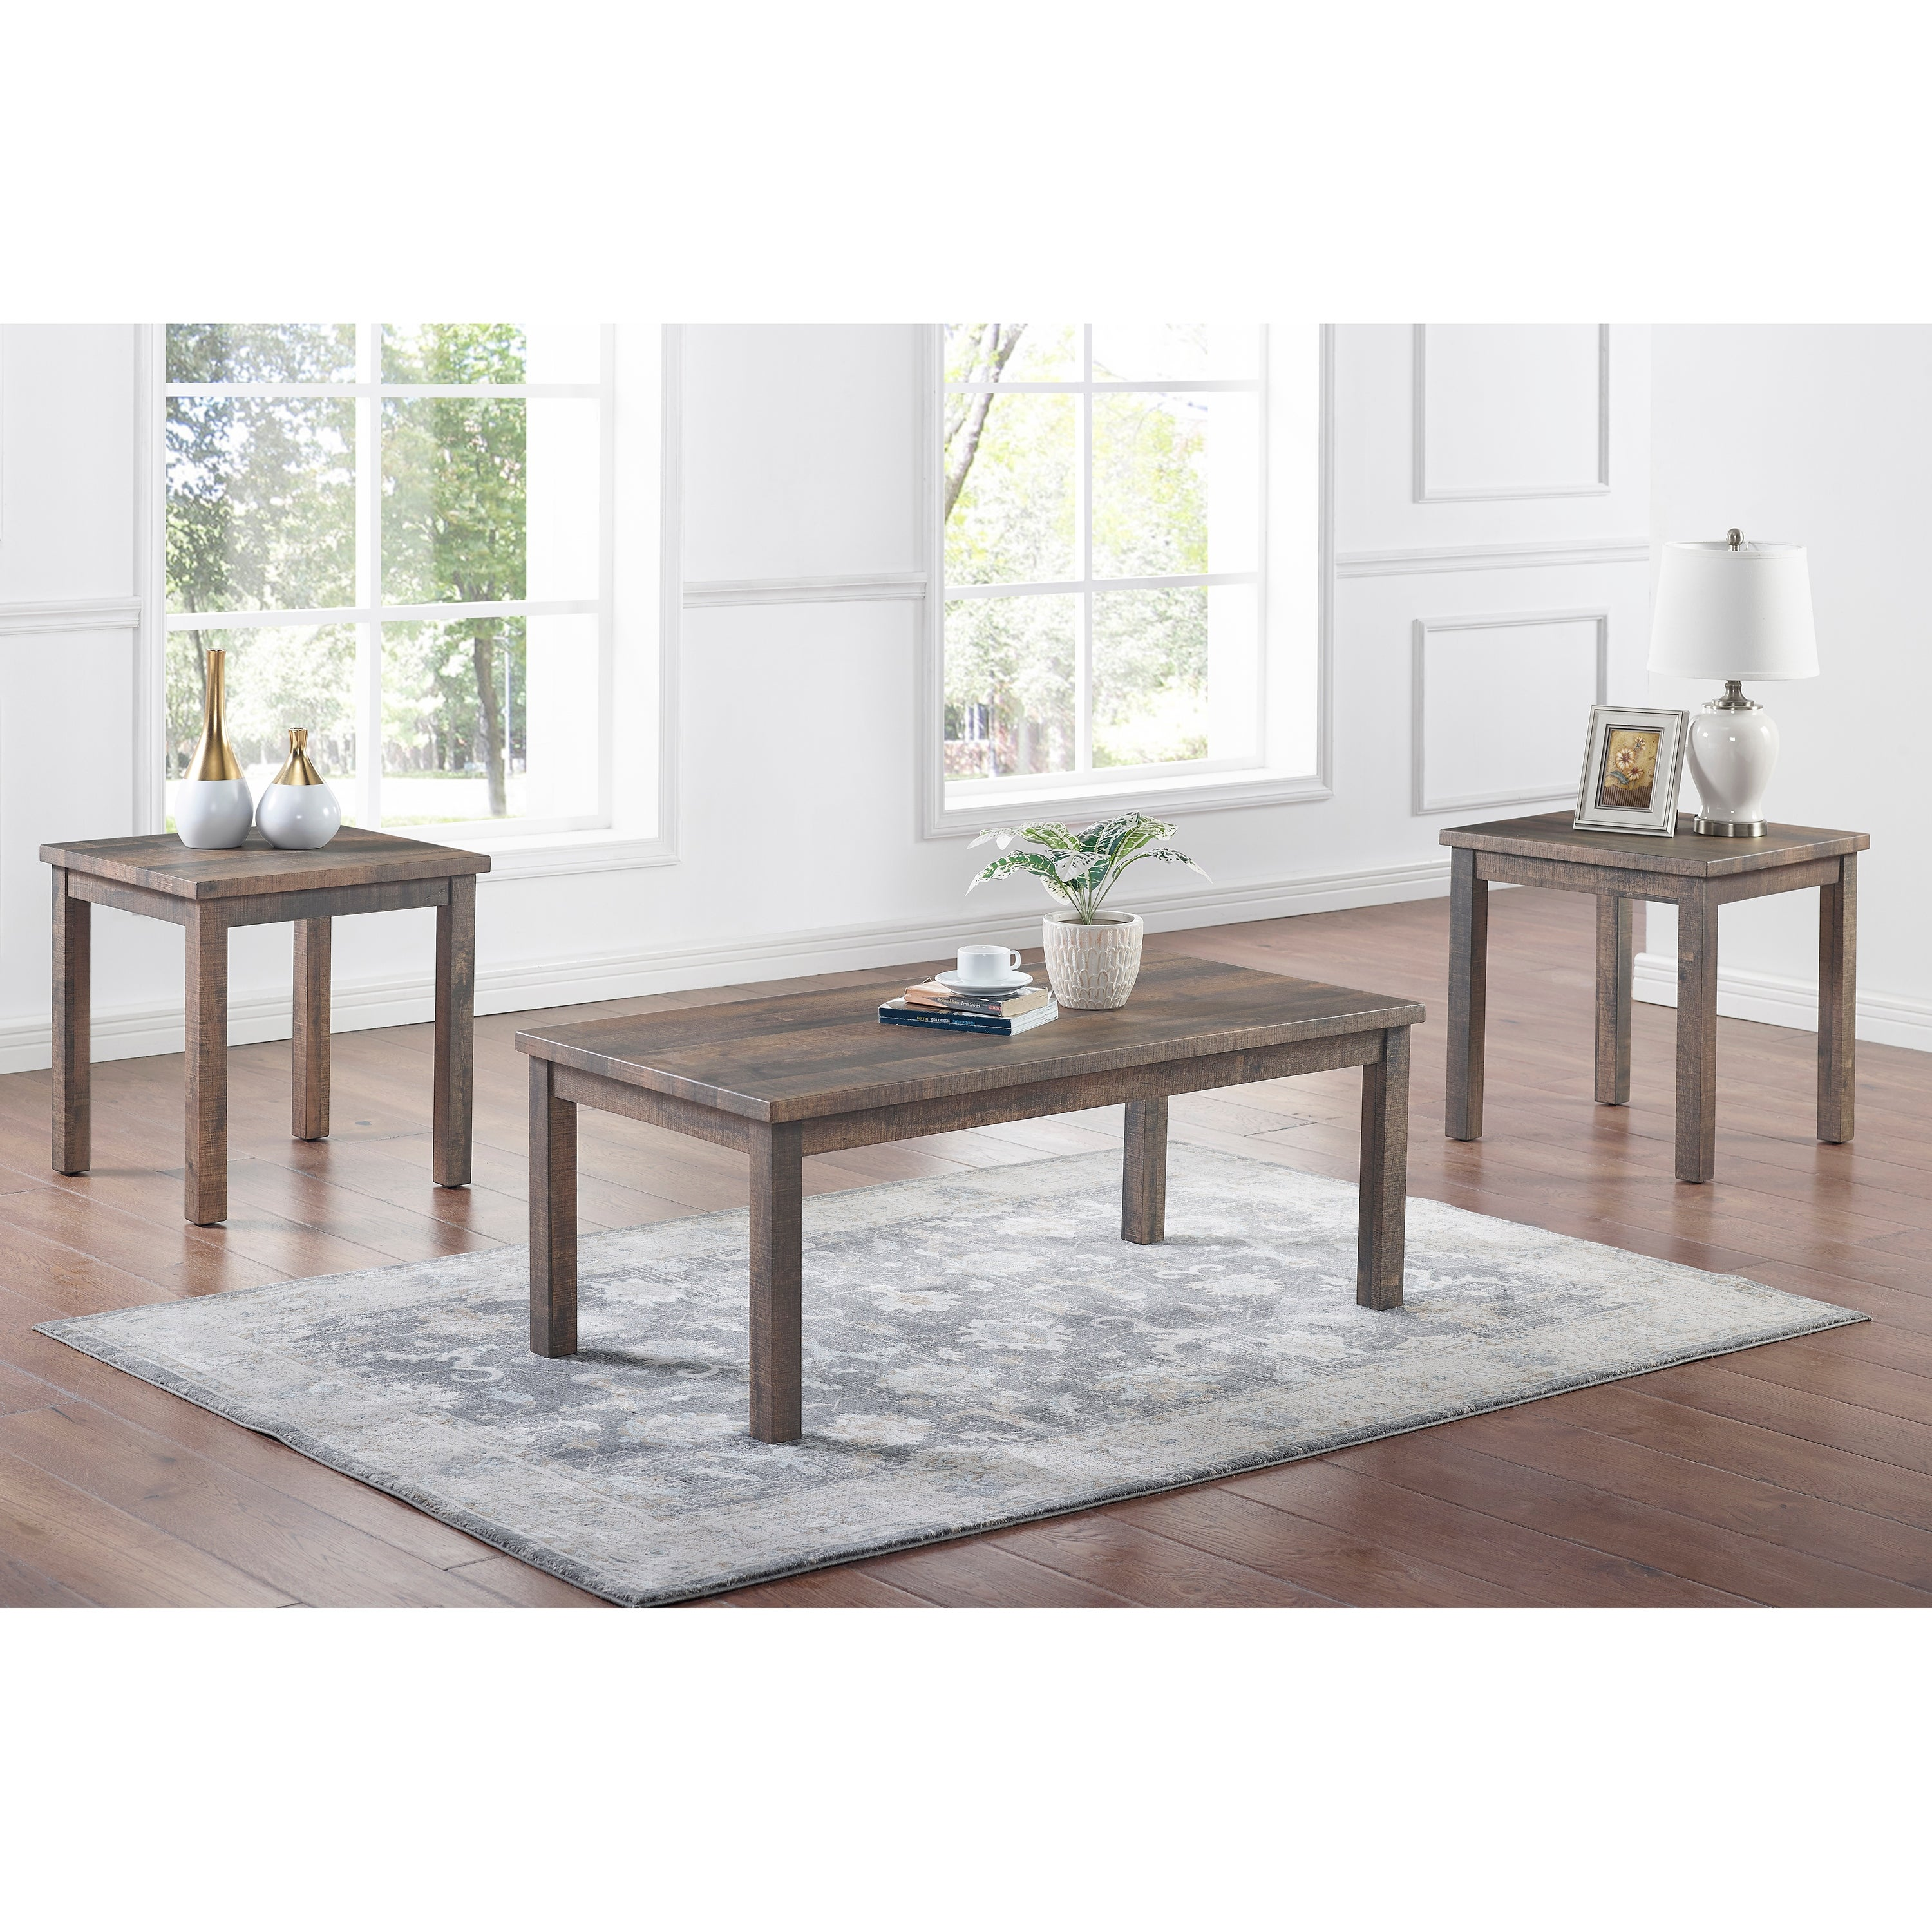 Picture of: Furniture Of America Boisee 3 Piece Coffee Table And End Tables Set Overstock 32518733